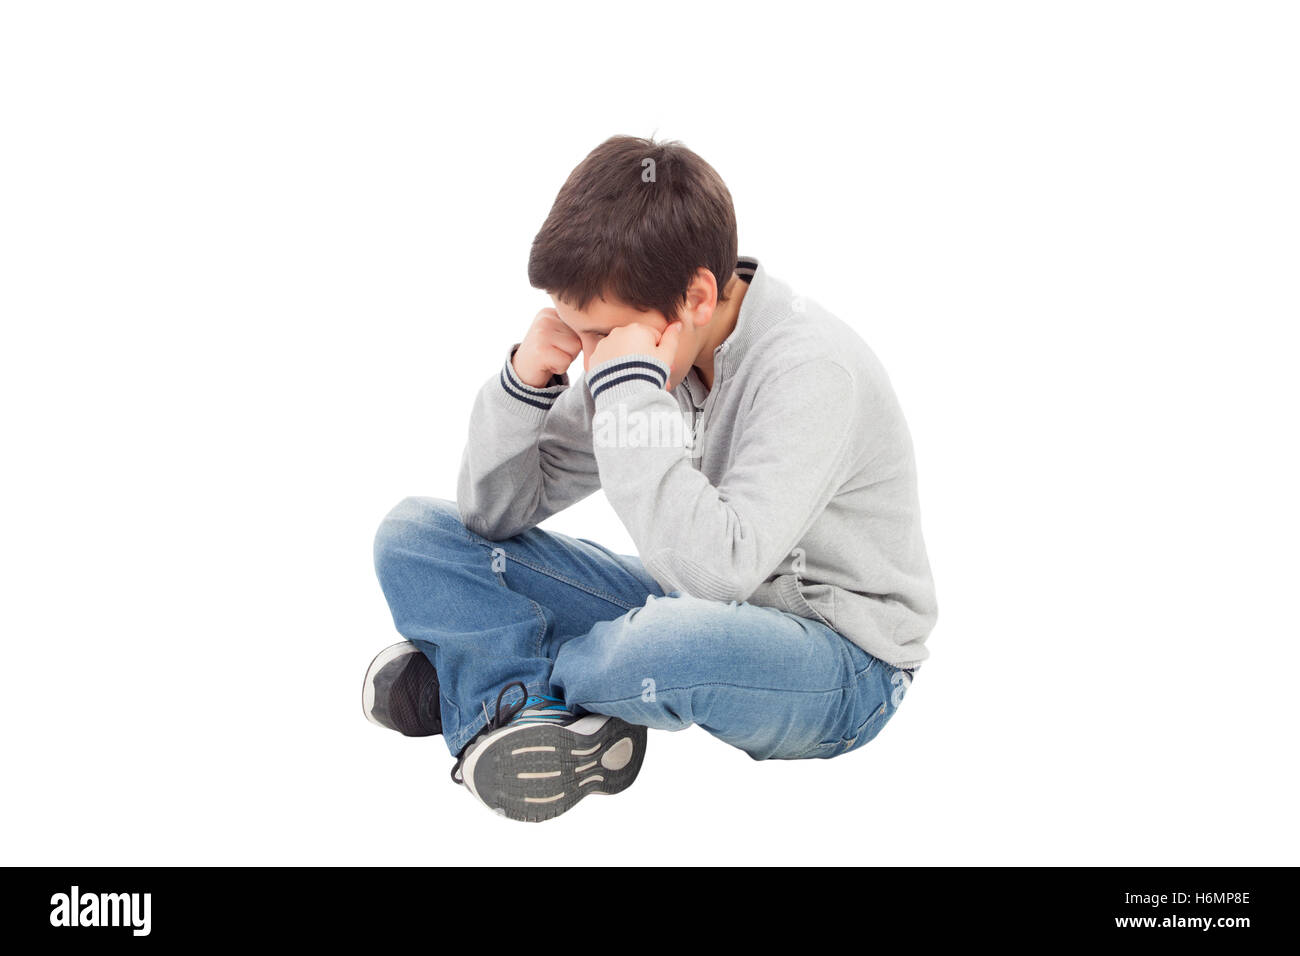 Sad preteen boy sitting on the floor isolated on a white background - Stock Image